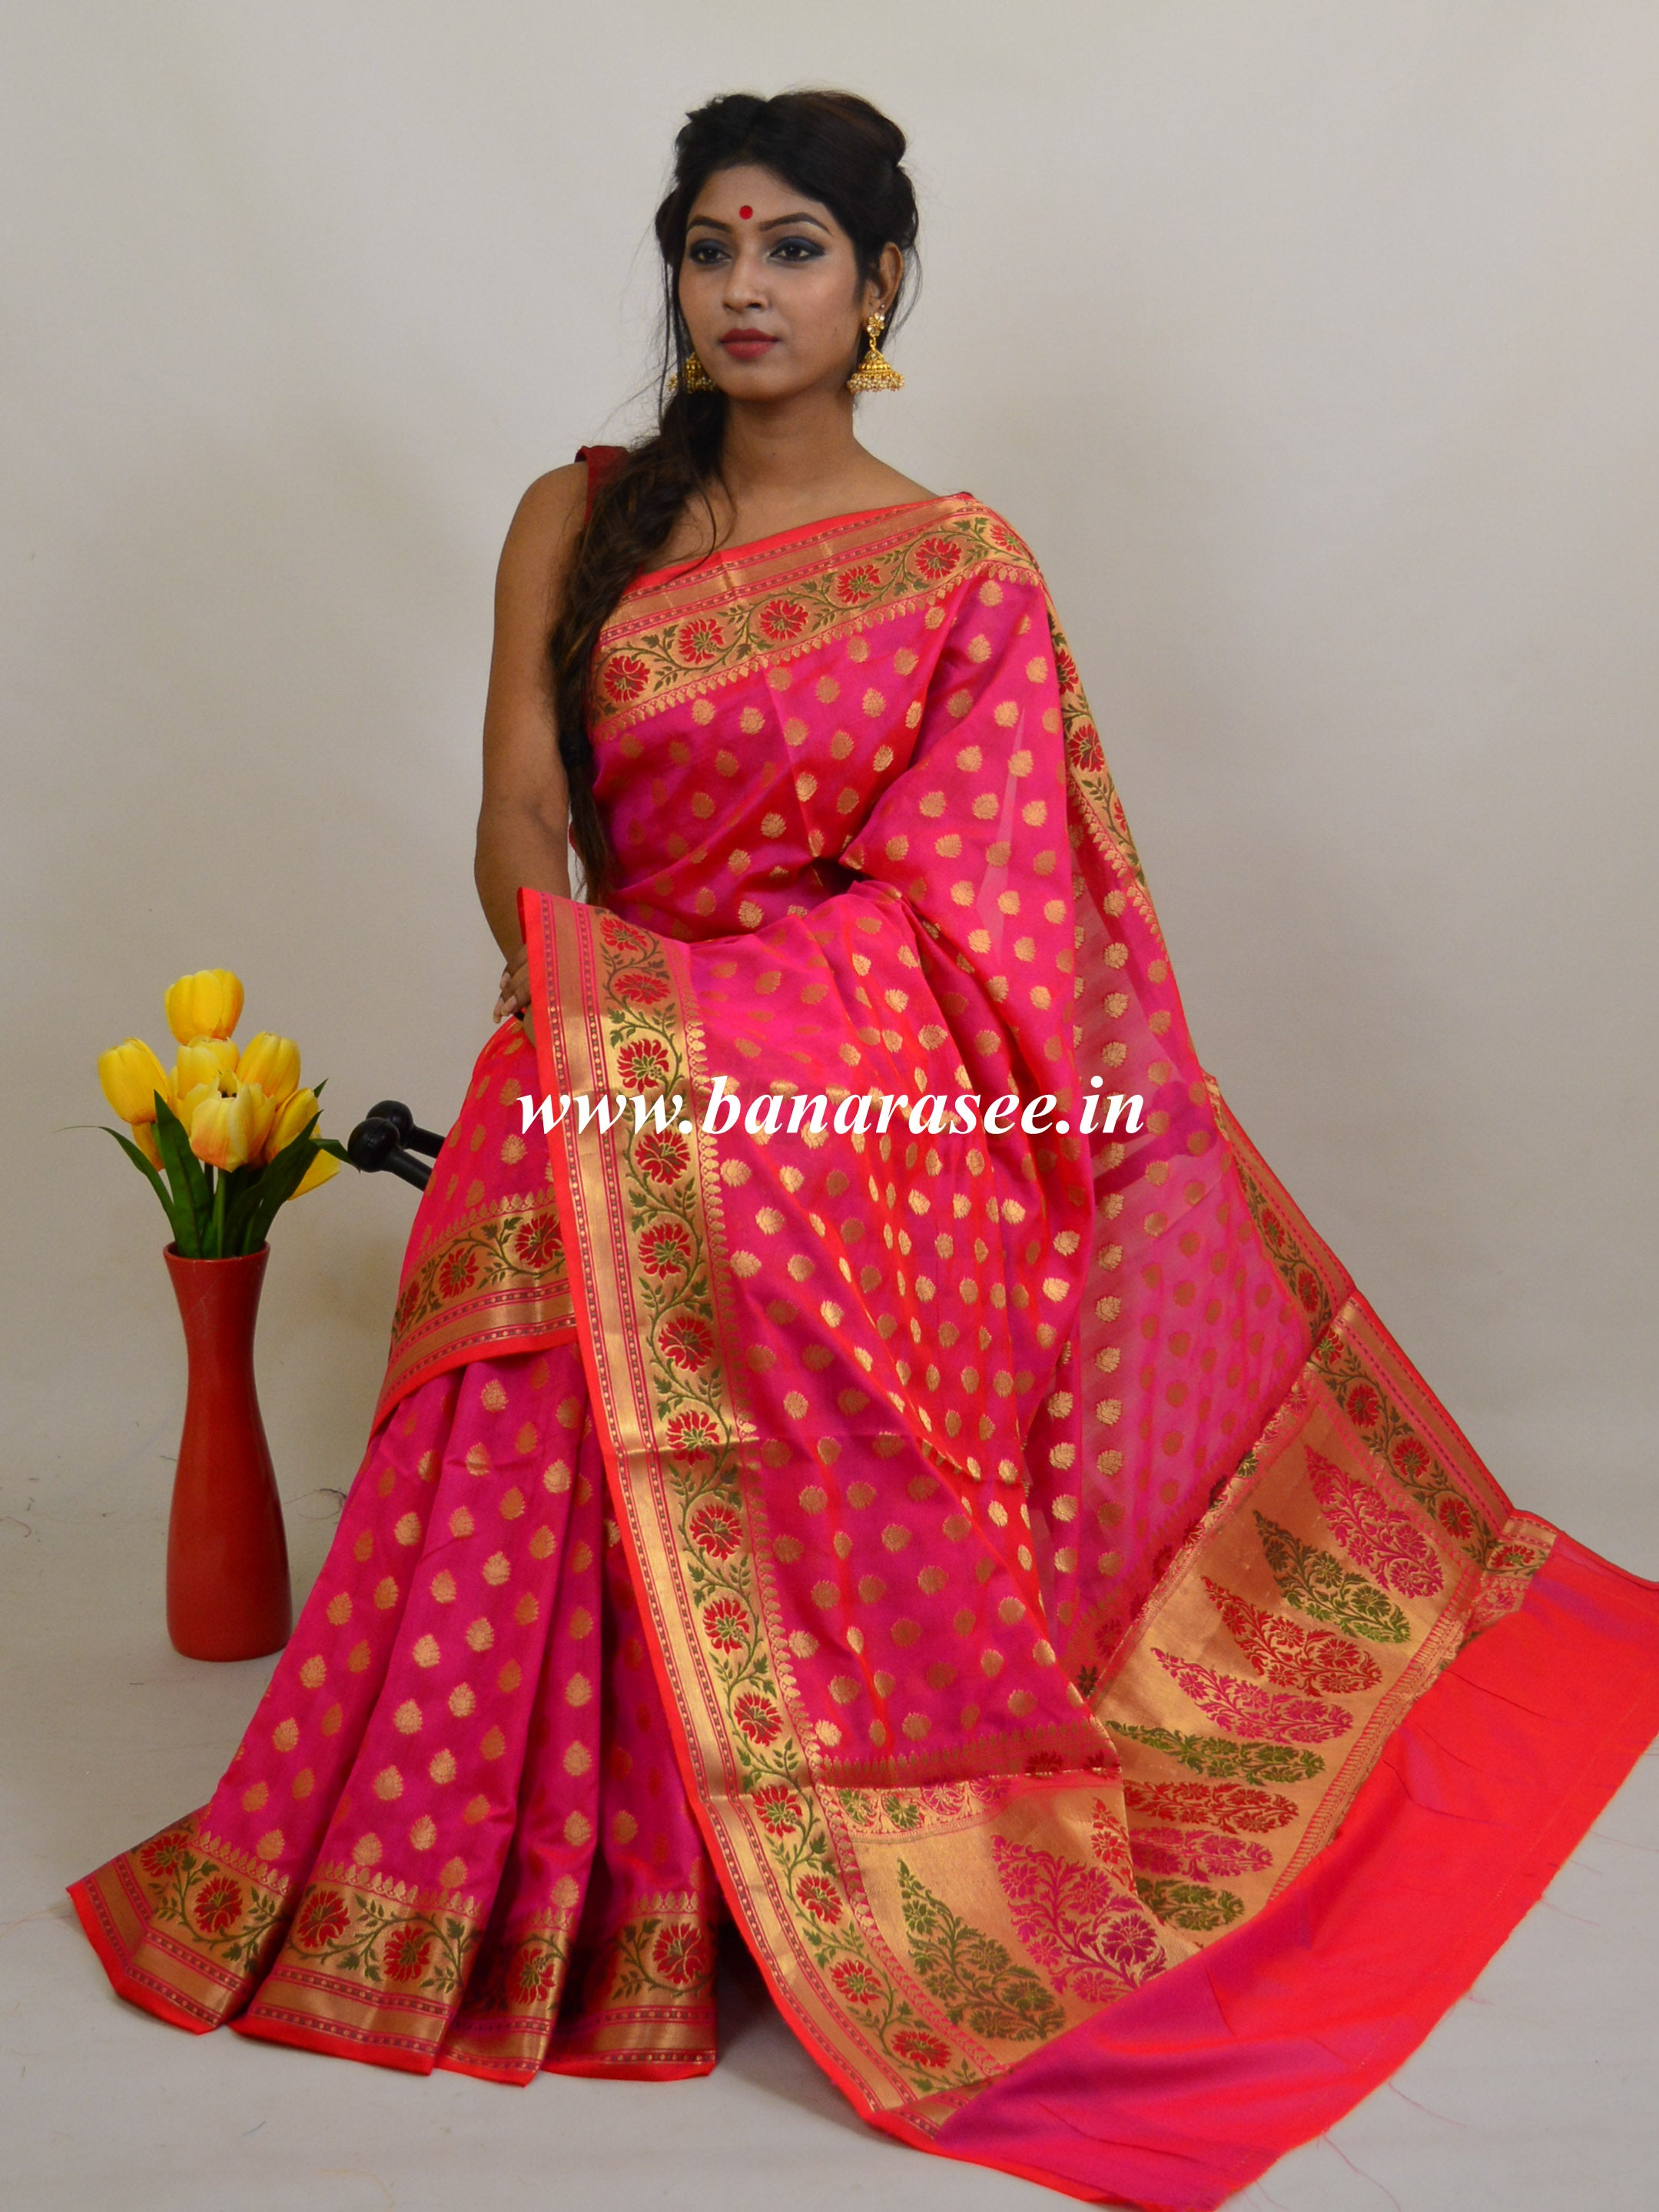 Banarasee Art Silk Saree with Zari Paithani Border-Hot Pink